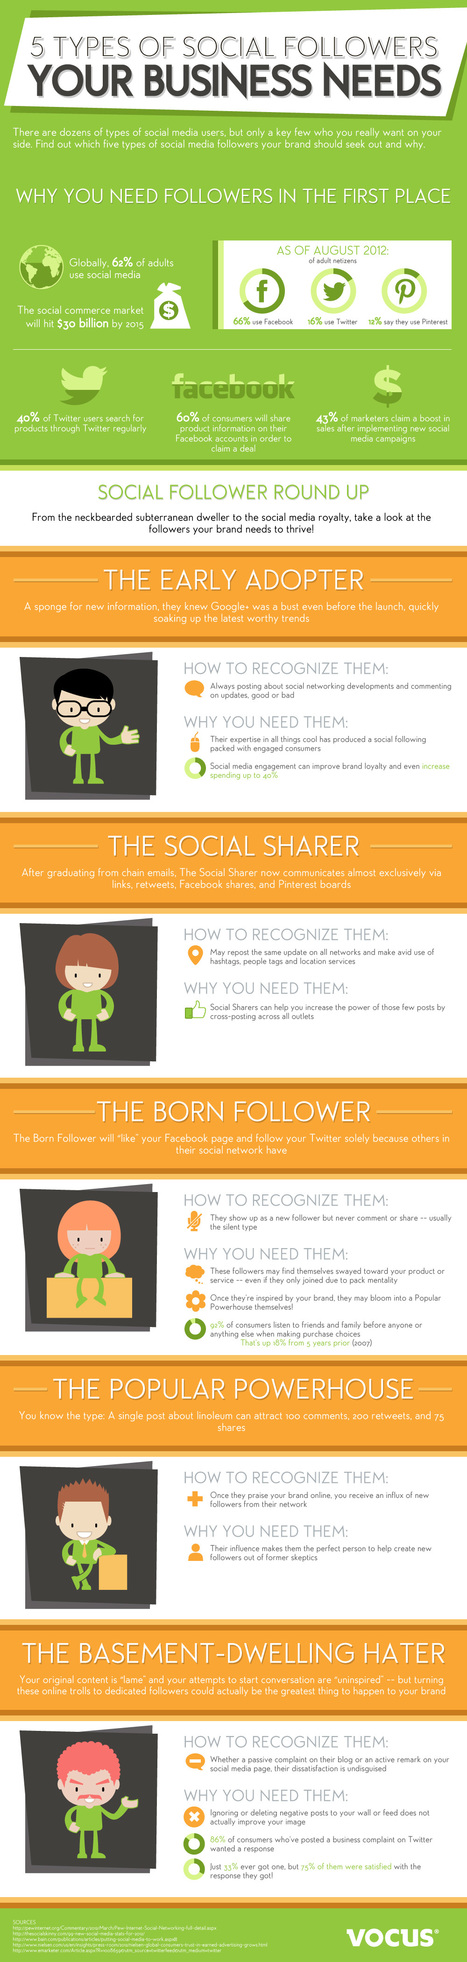 The 5 Types of Social Followers that Every Business Needs [INFOGRAPHIC] | Actualidad Express | Scoop.it